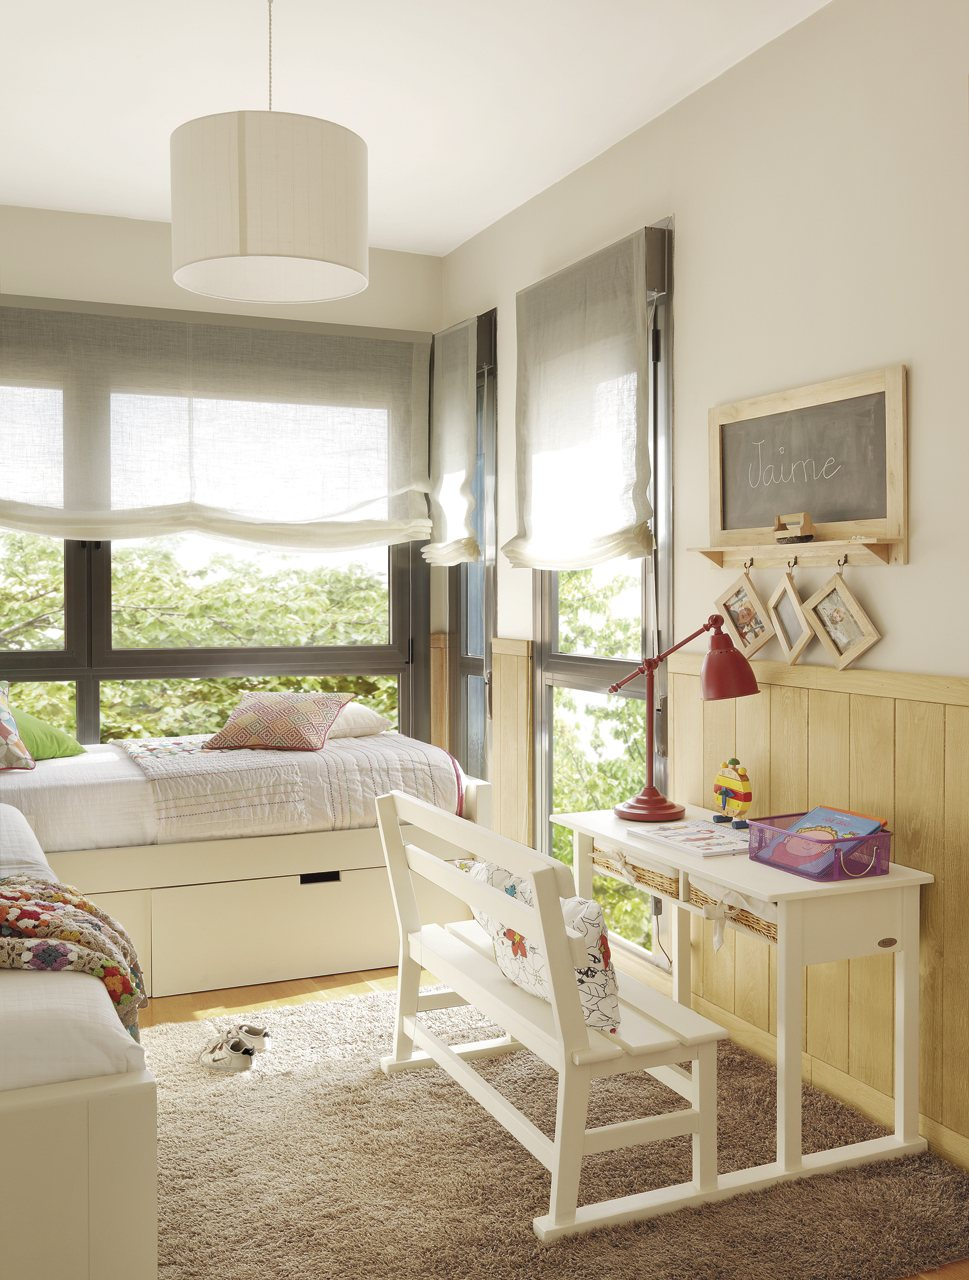 Ideas creativas para decorar un cuarto infantil - Ideas decorar habitacion infantil ...